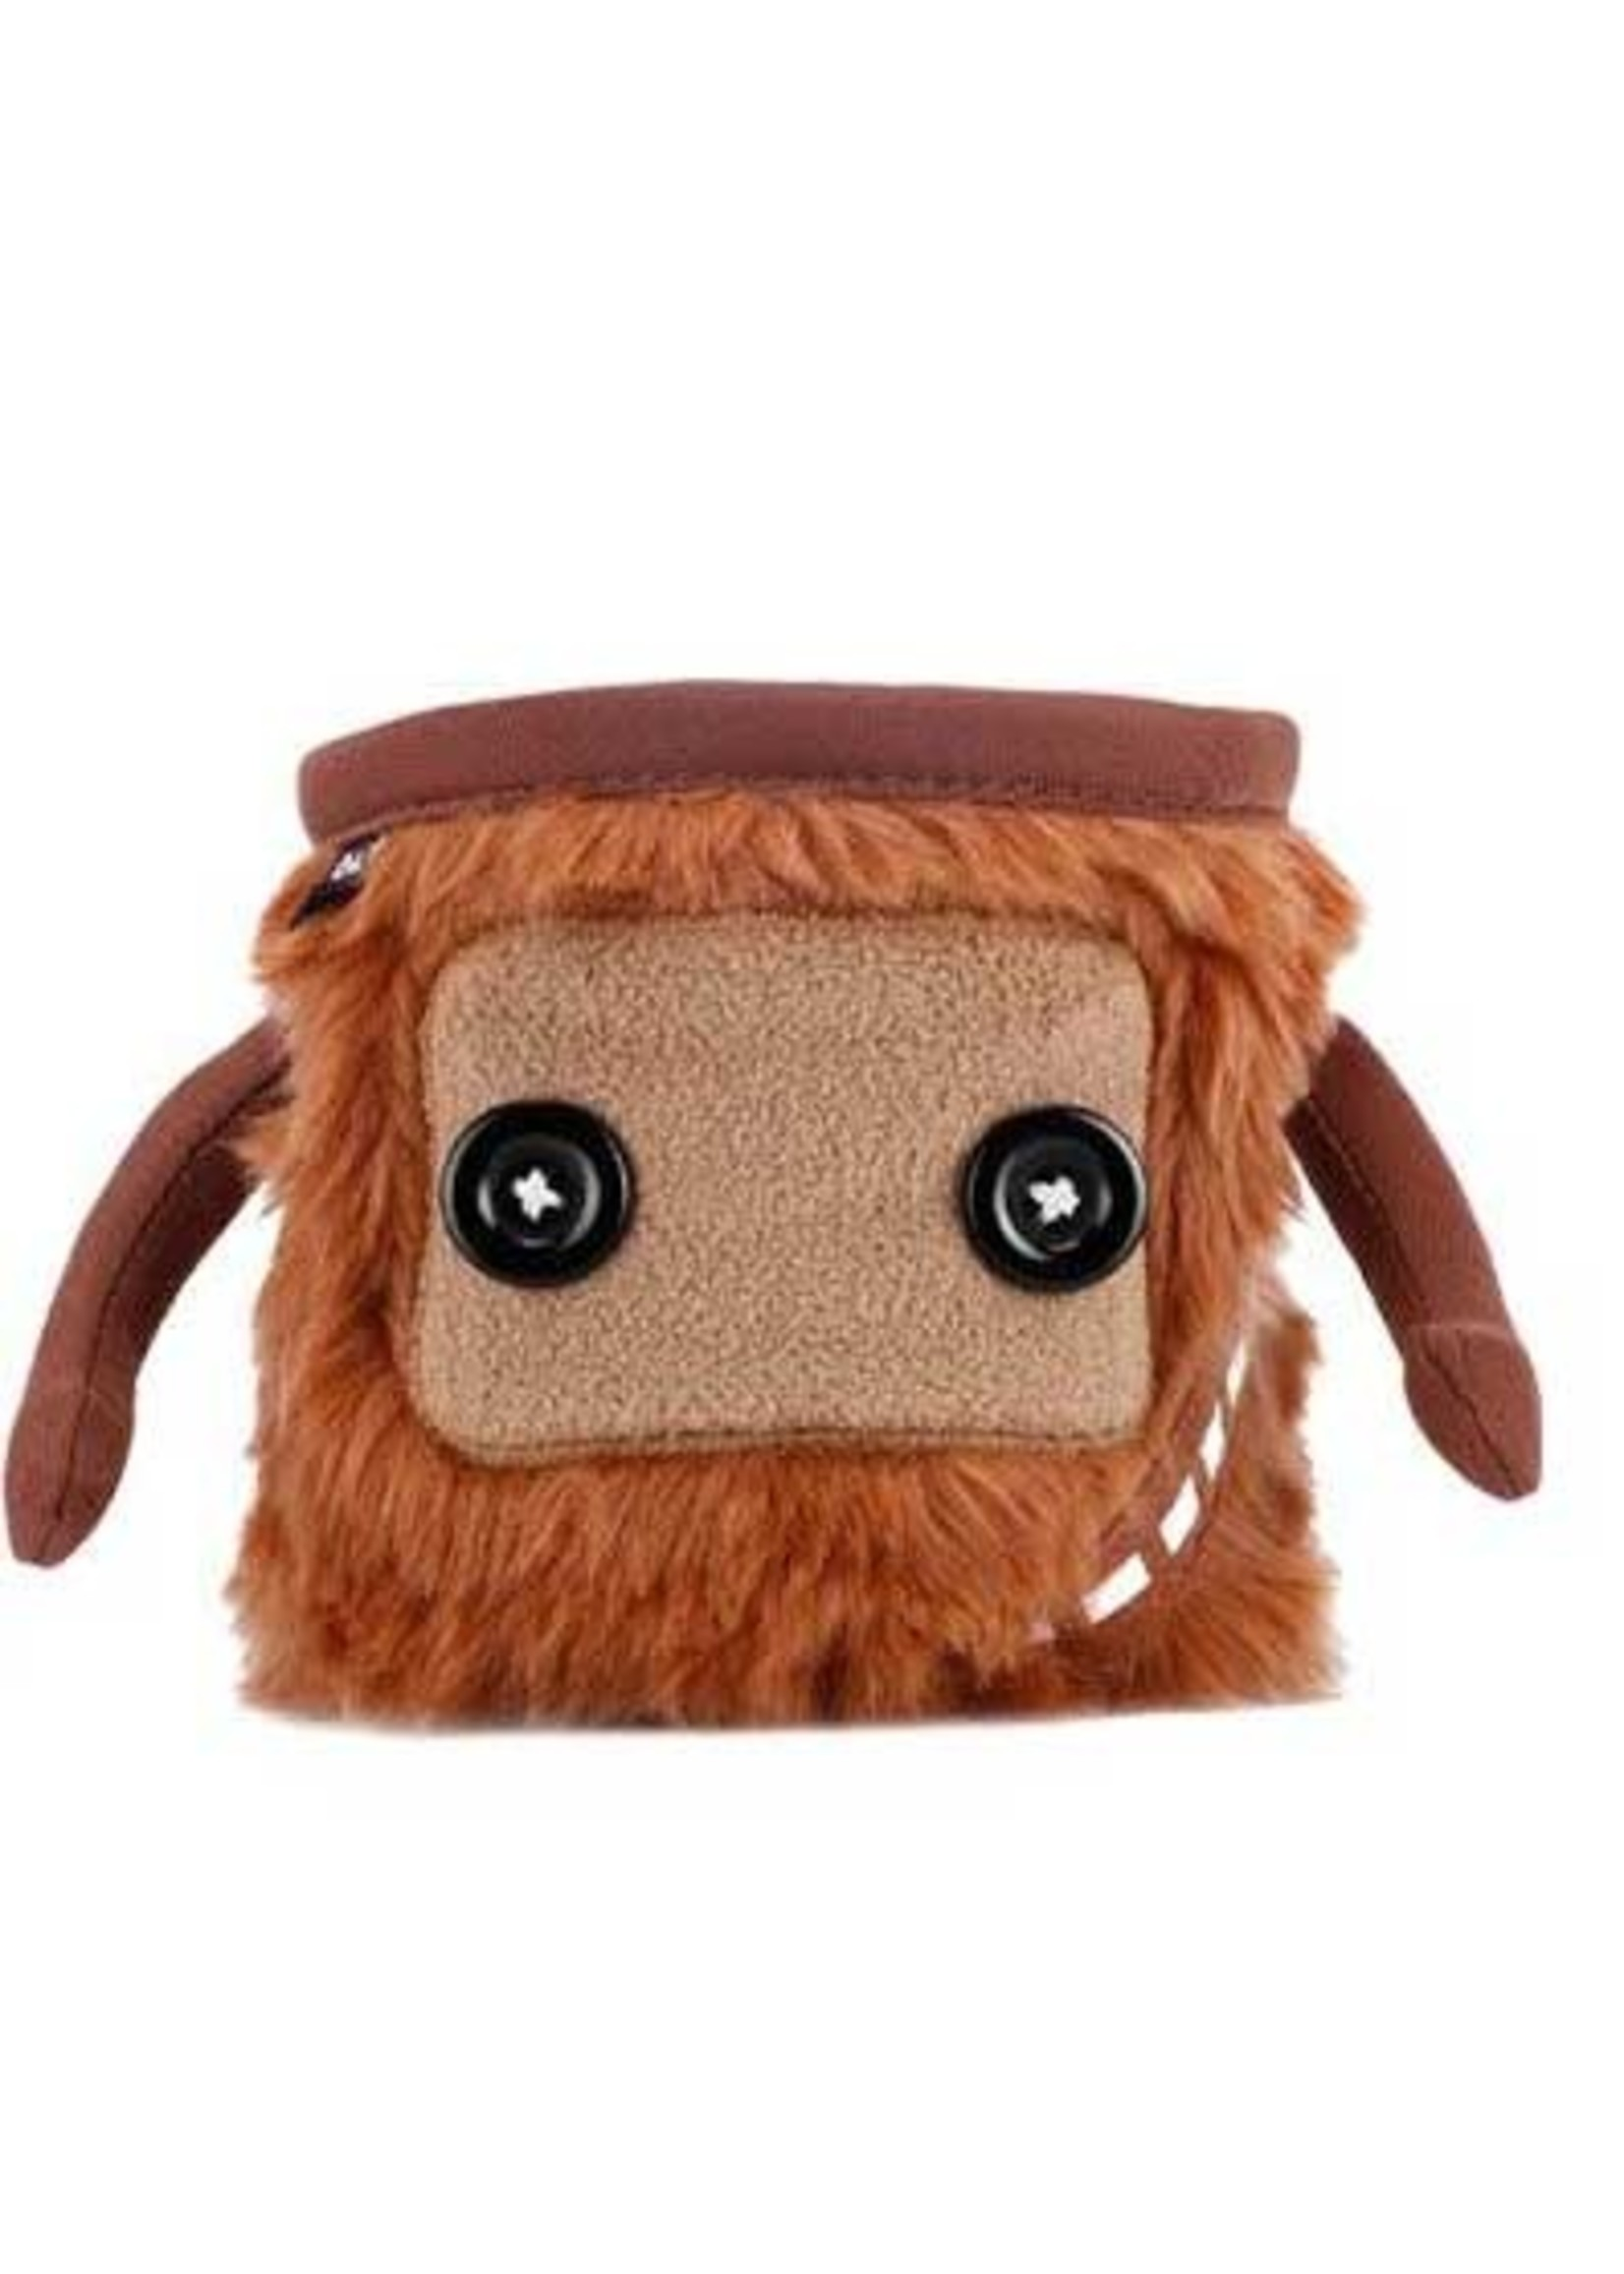 HMH 8BPlus Character Release Pouch